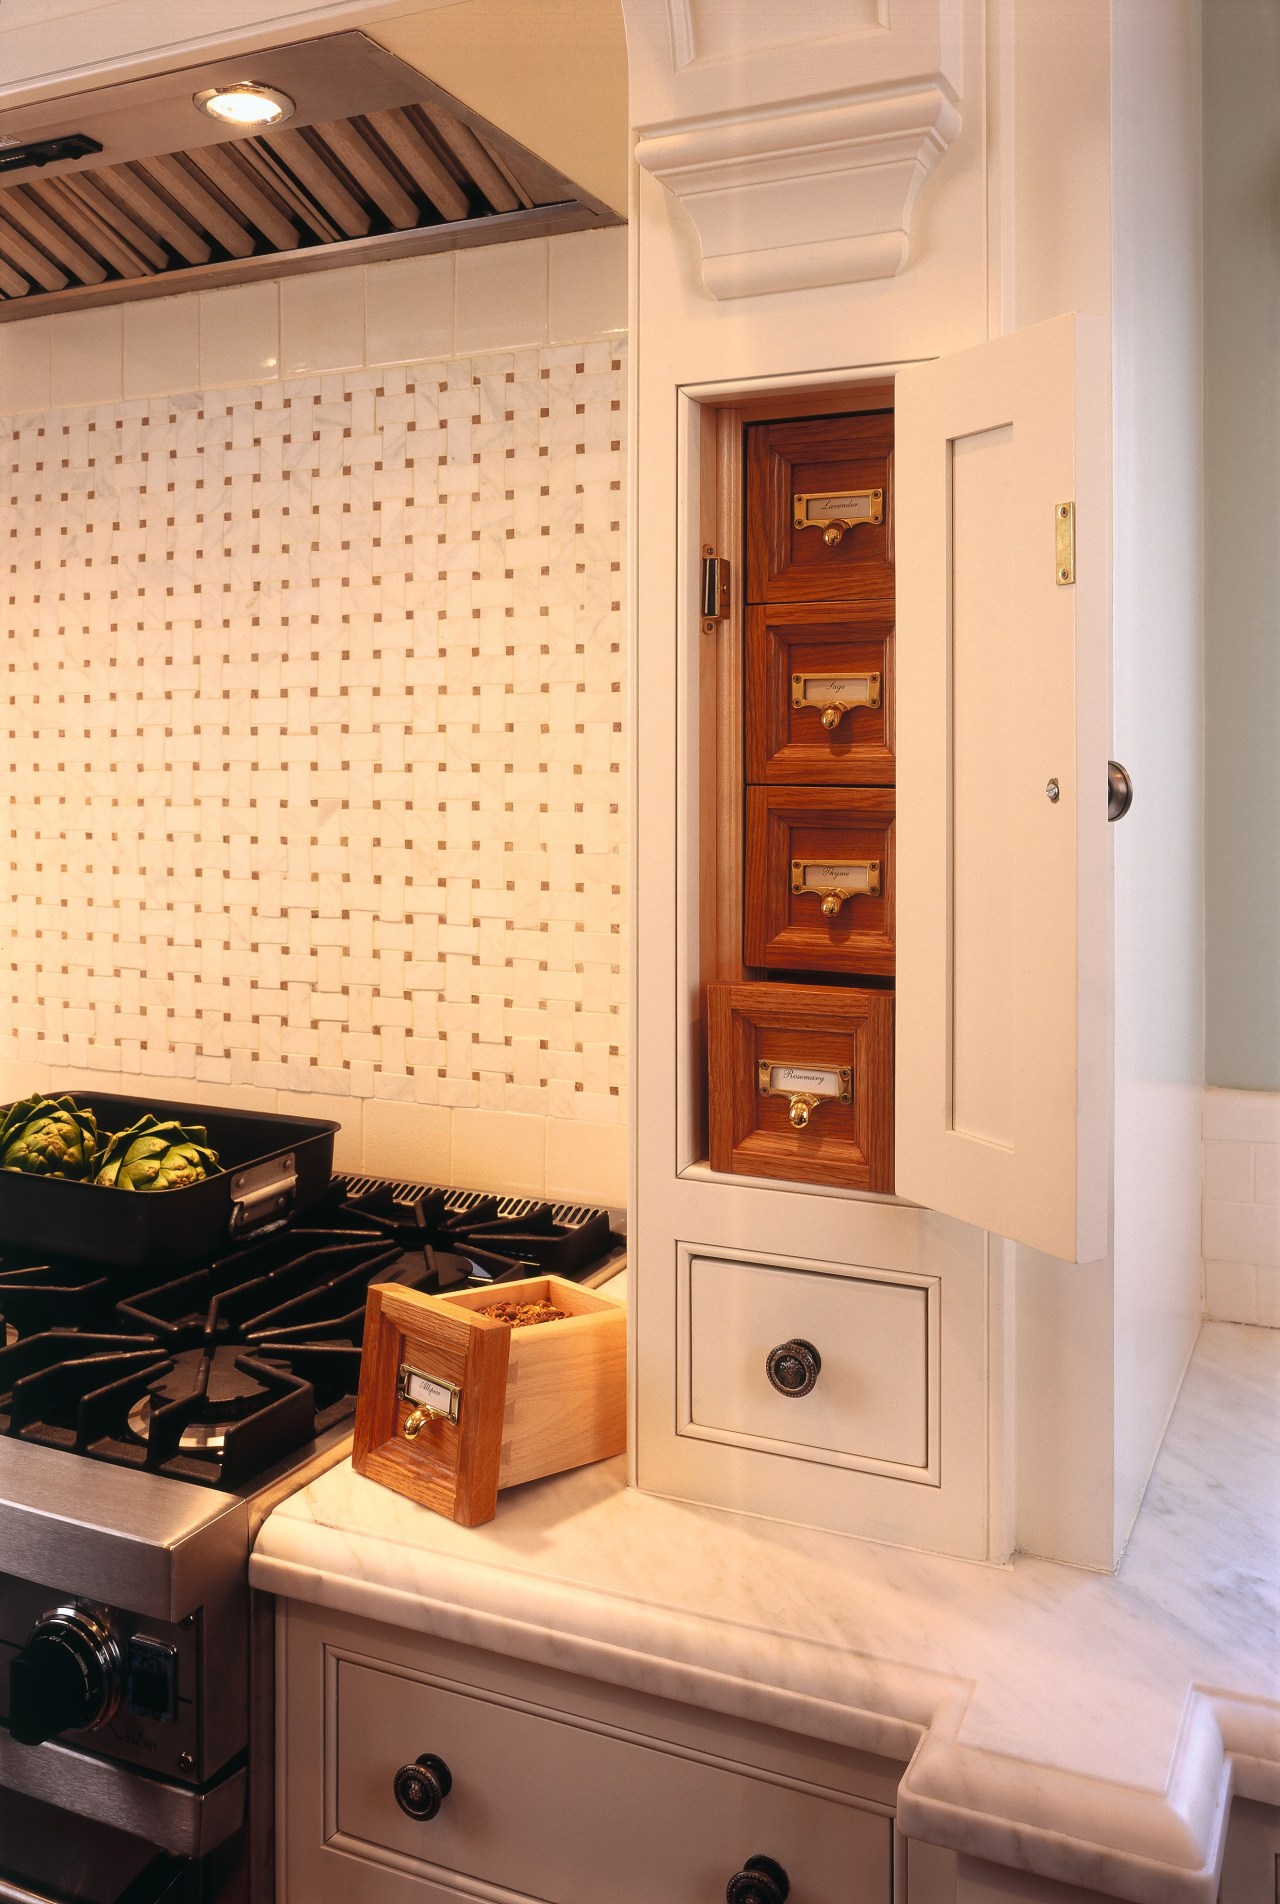 Kitchen with white traditional style cabinetry, spice drawers, cabinetry, countertop, furniture, home appliance, interior design, kitchen, major appliance, room, orange